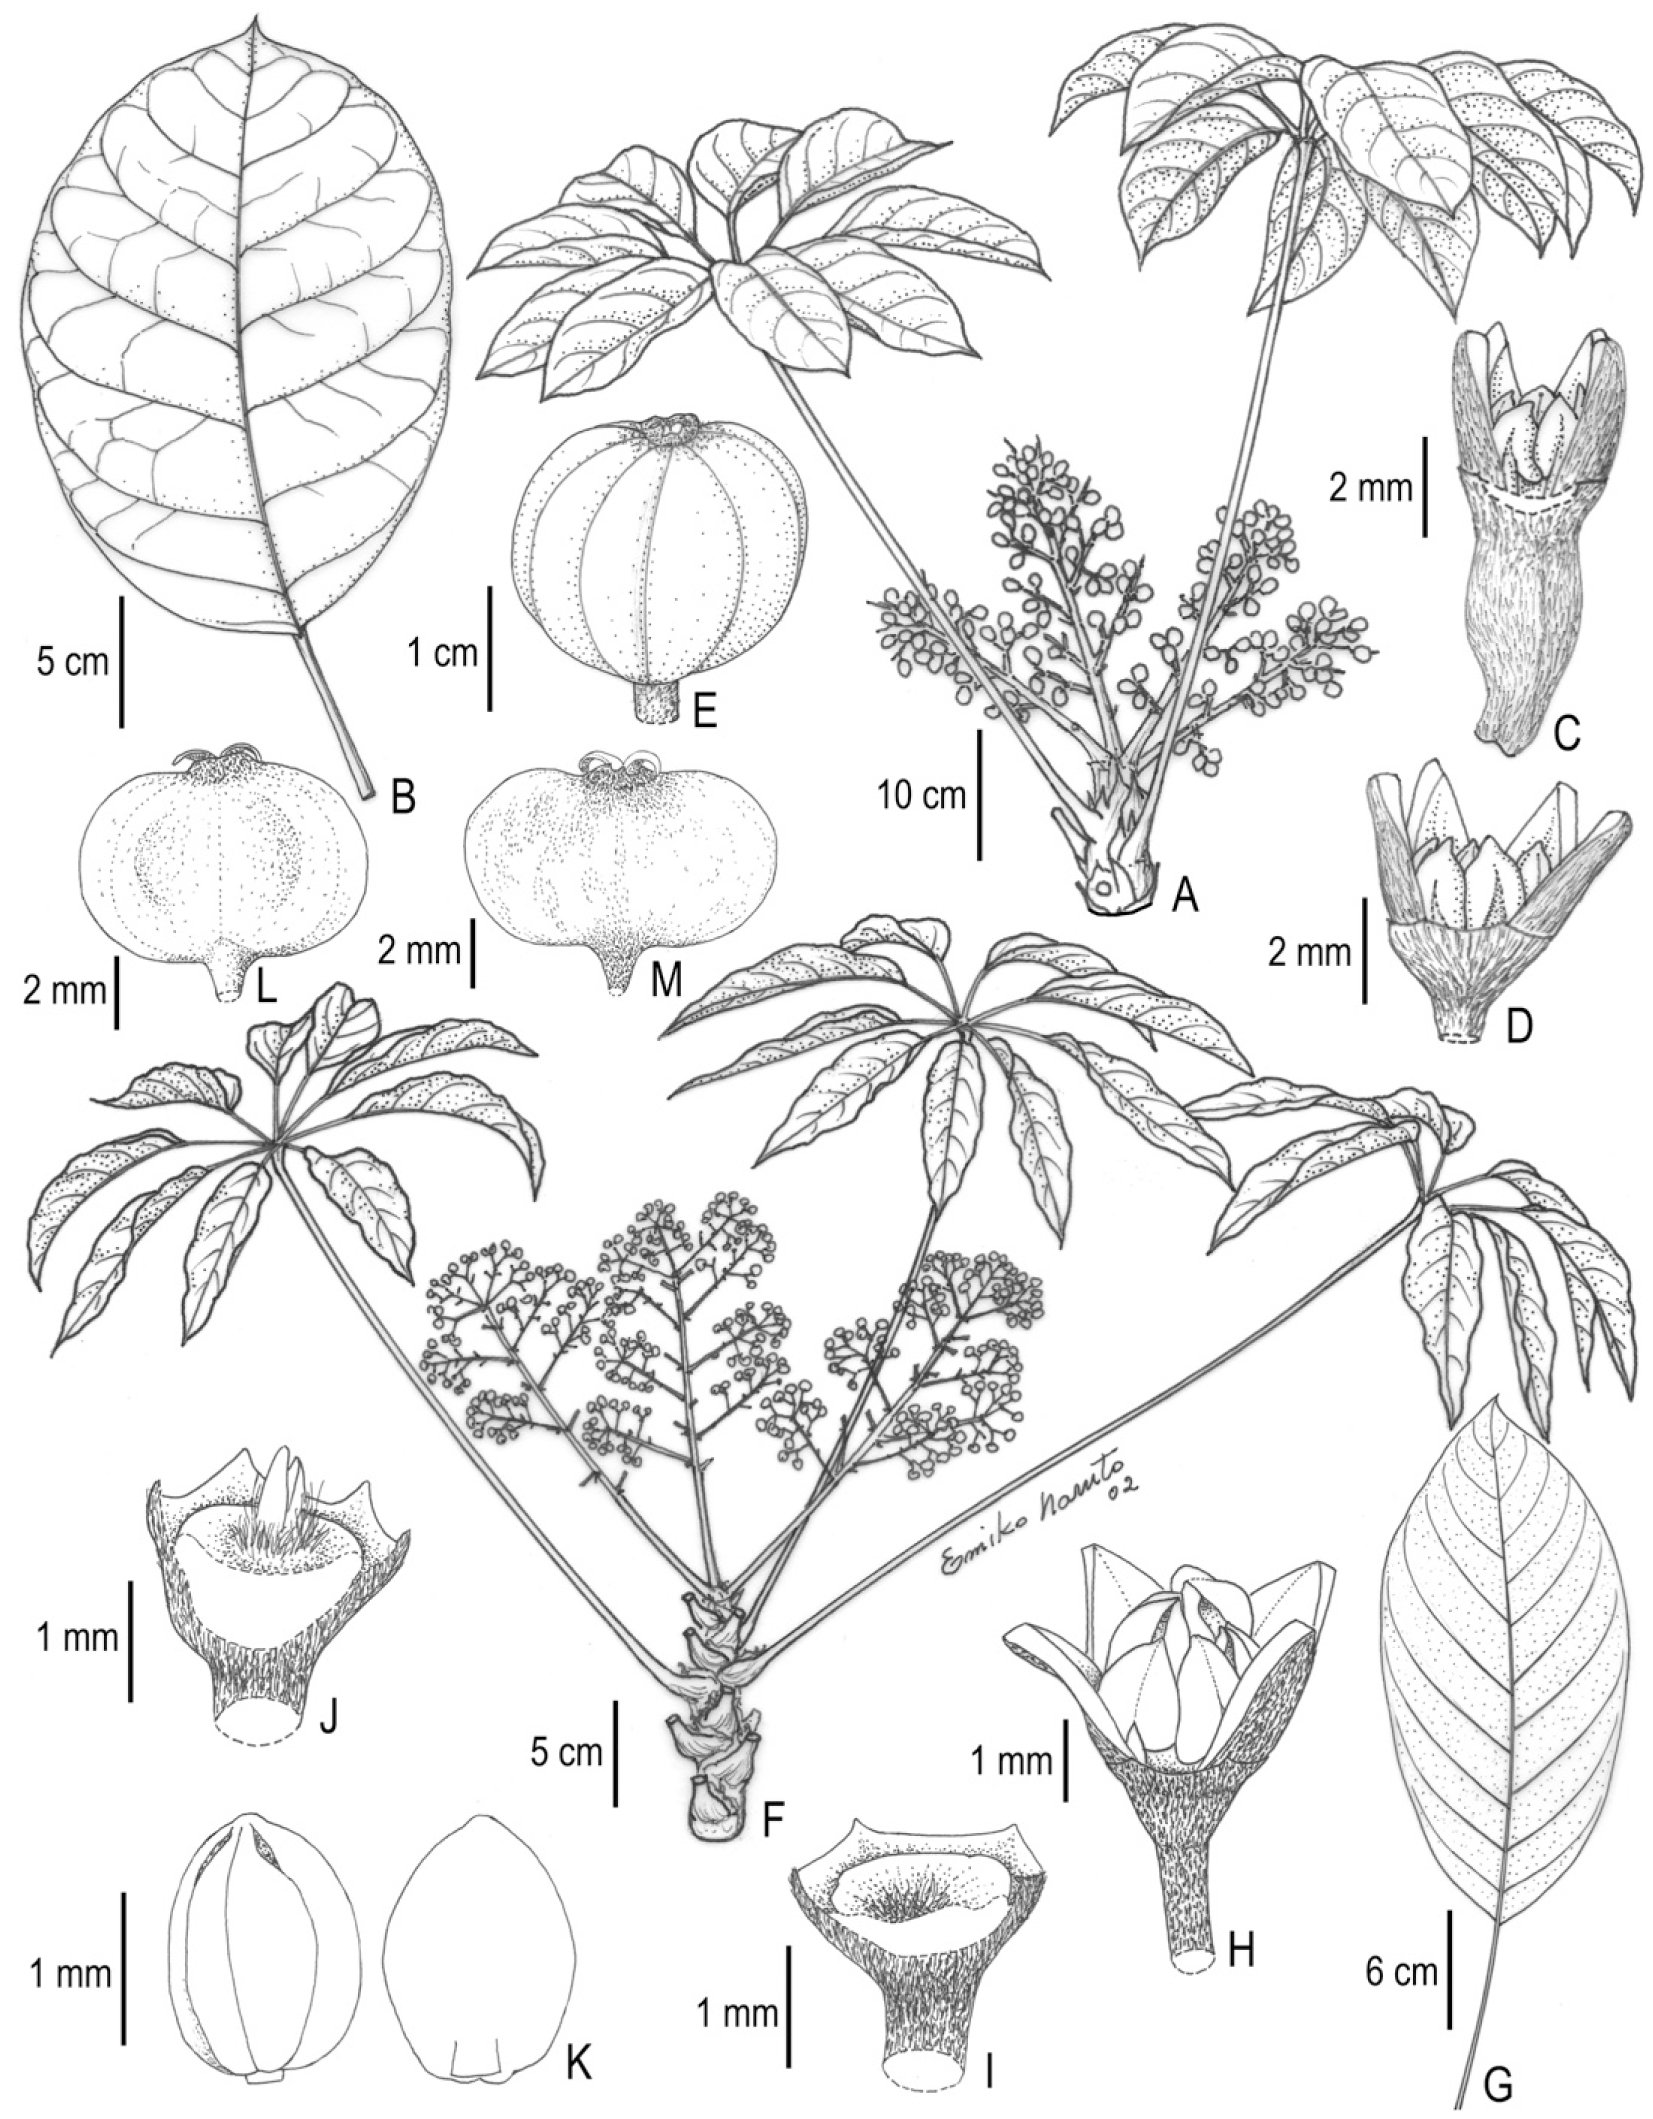 revision of the didymopanax group of neotropical schefflera 1986 El Camino Conquista m from house 2347 us modified from figure 1 from fiaschi 2004 with permission from new york botanical garden press and figure 9 from fiaschi and pirani